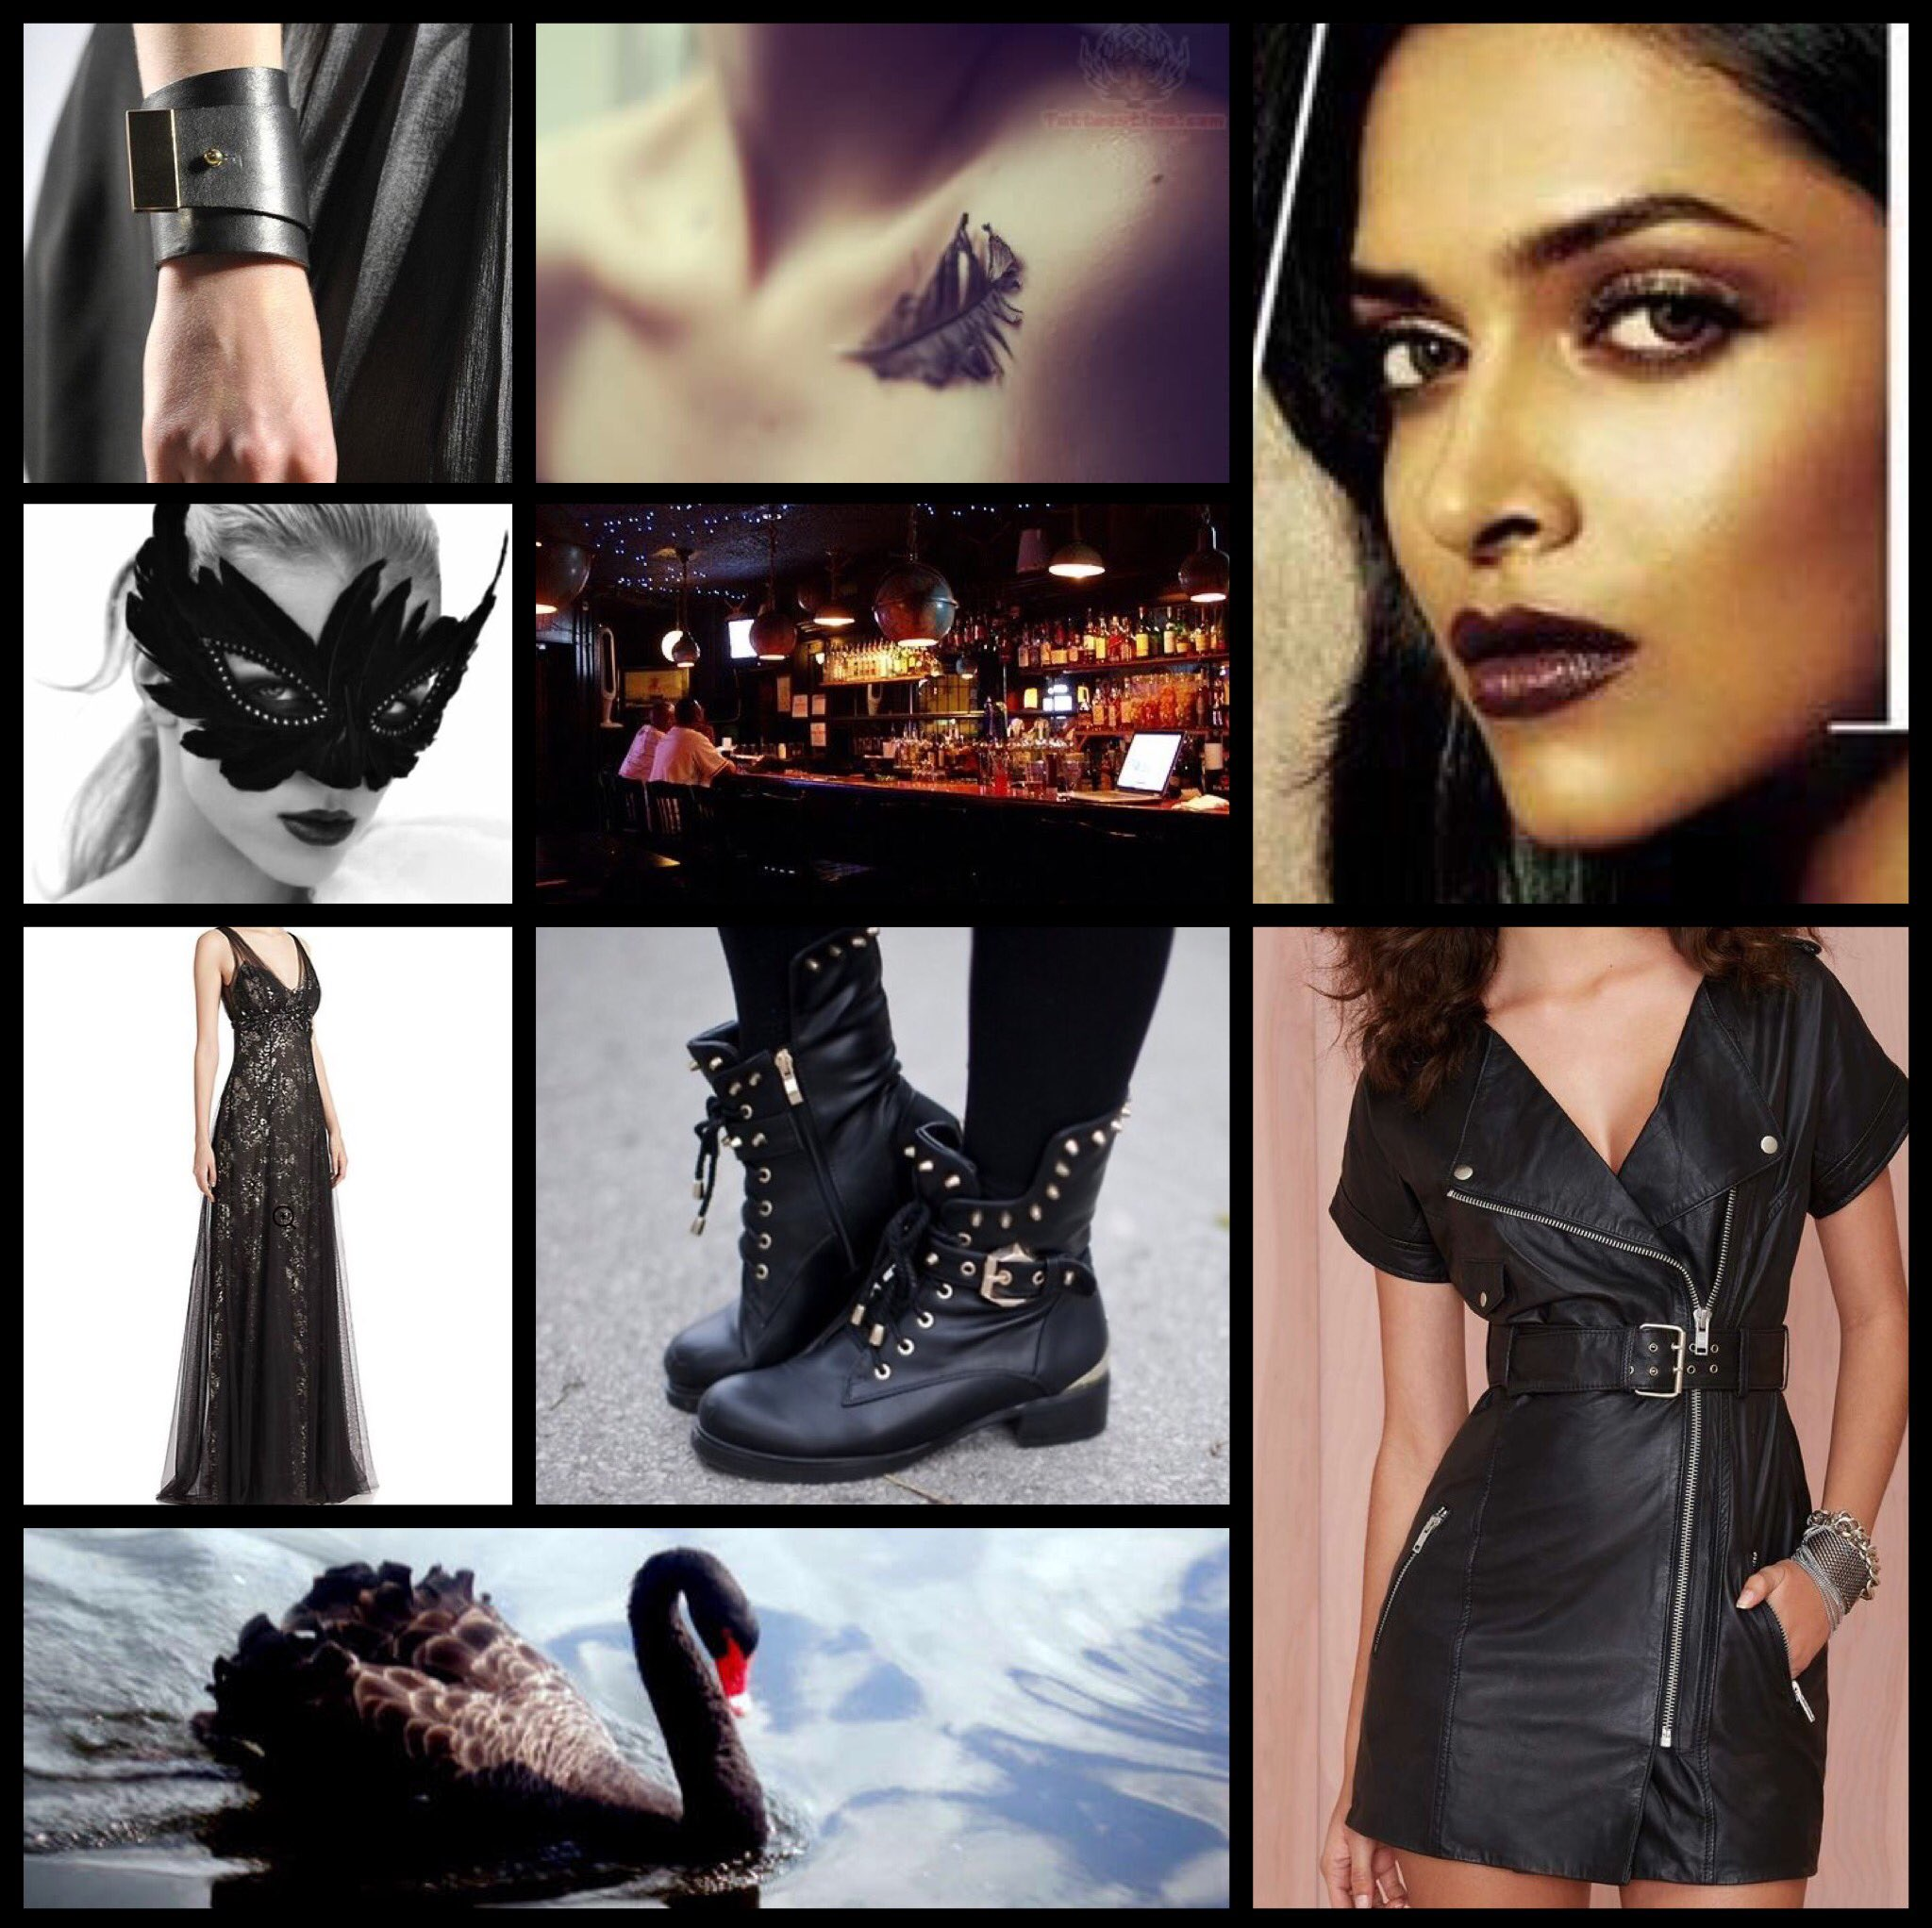 #WIPjoy Day 2: My protag is Kali, a cynical, magic-wielding 18-year-old who works at a dive bar #characteraesthetics https://t.co/PM6phGz1Qd